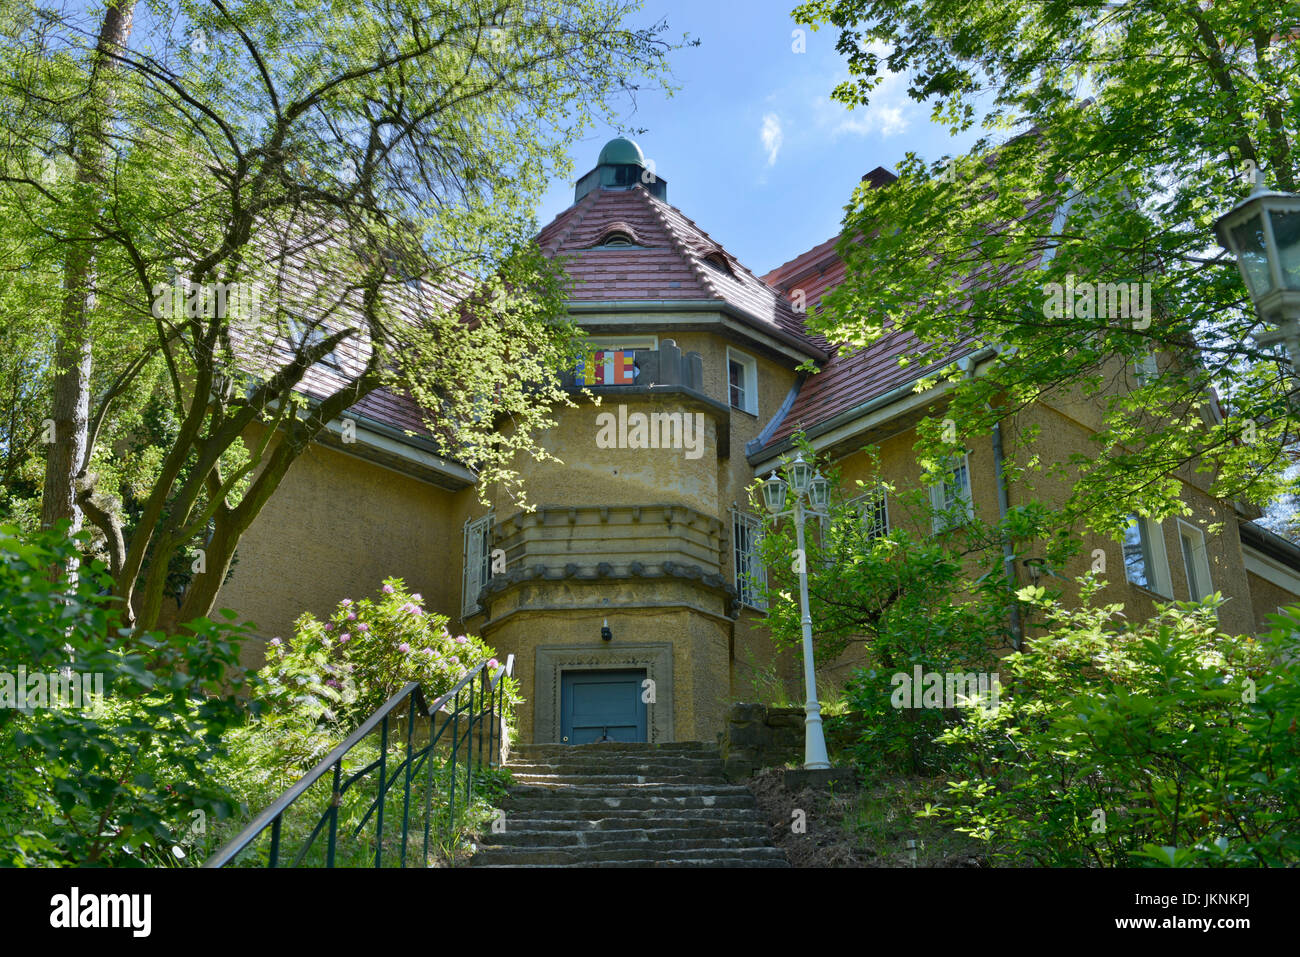 Buddhist house, noble court dam, Frohnau, village Reinicken, Berlin, Germany, Buddhistisches Haus, Edelhofdamm, - Stock Image